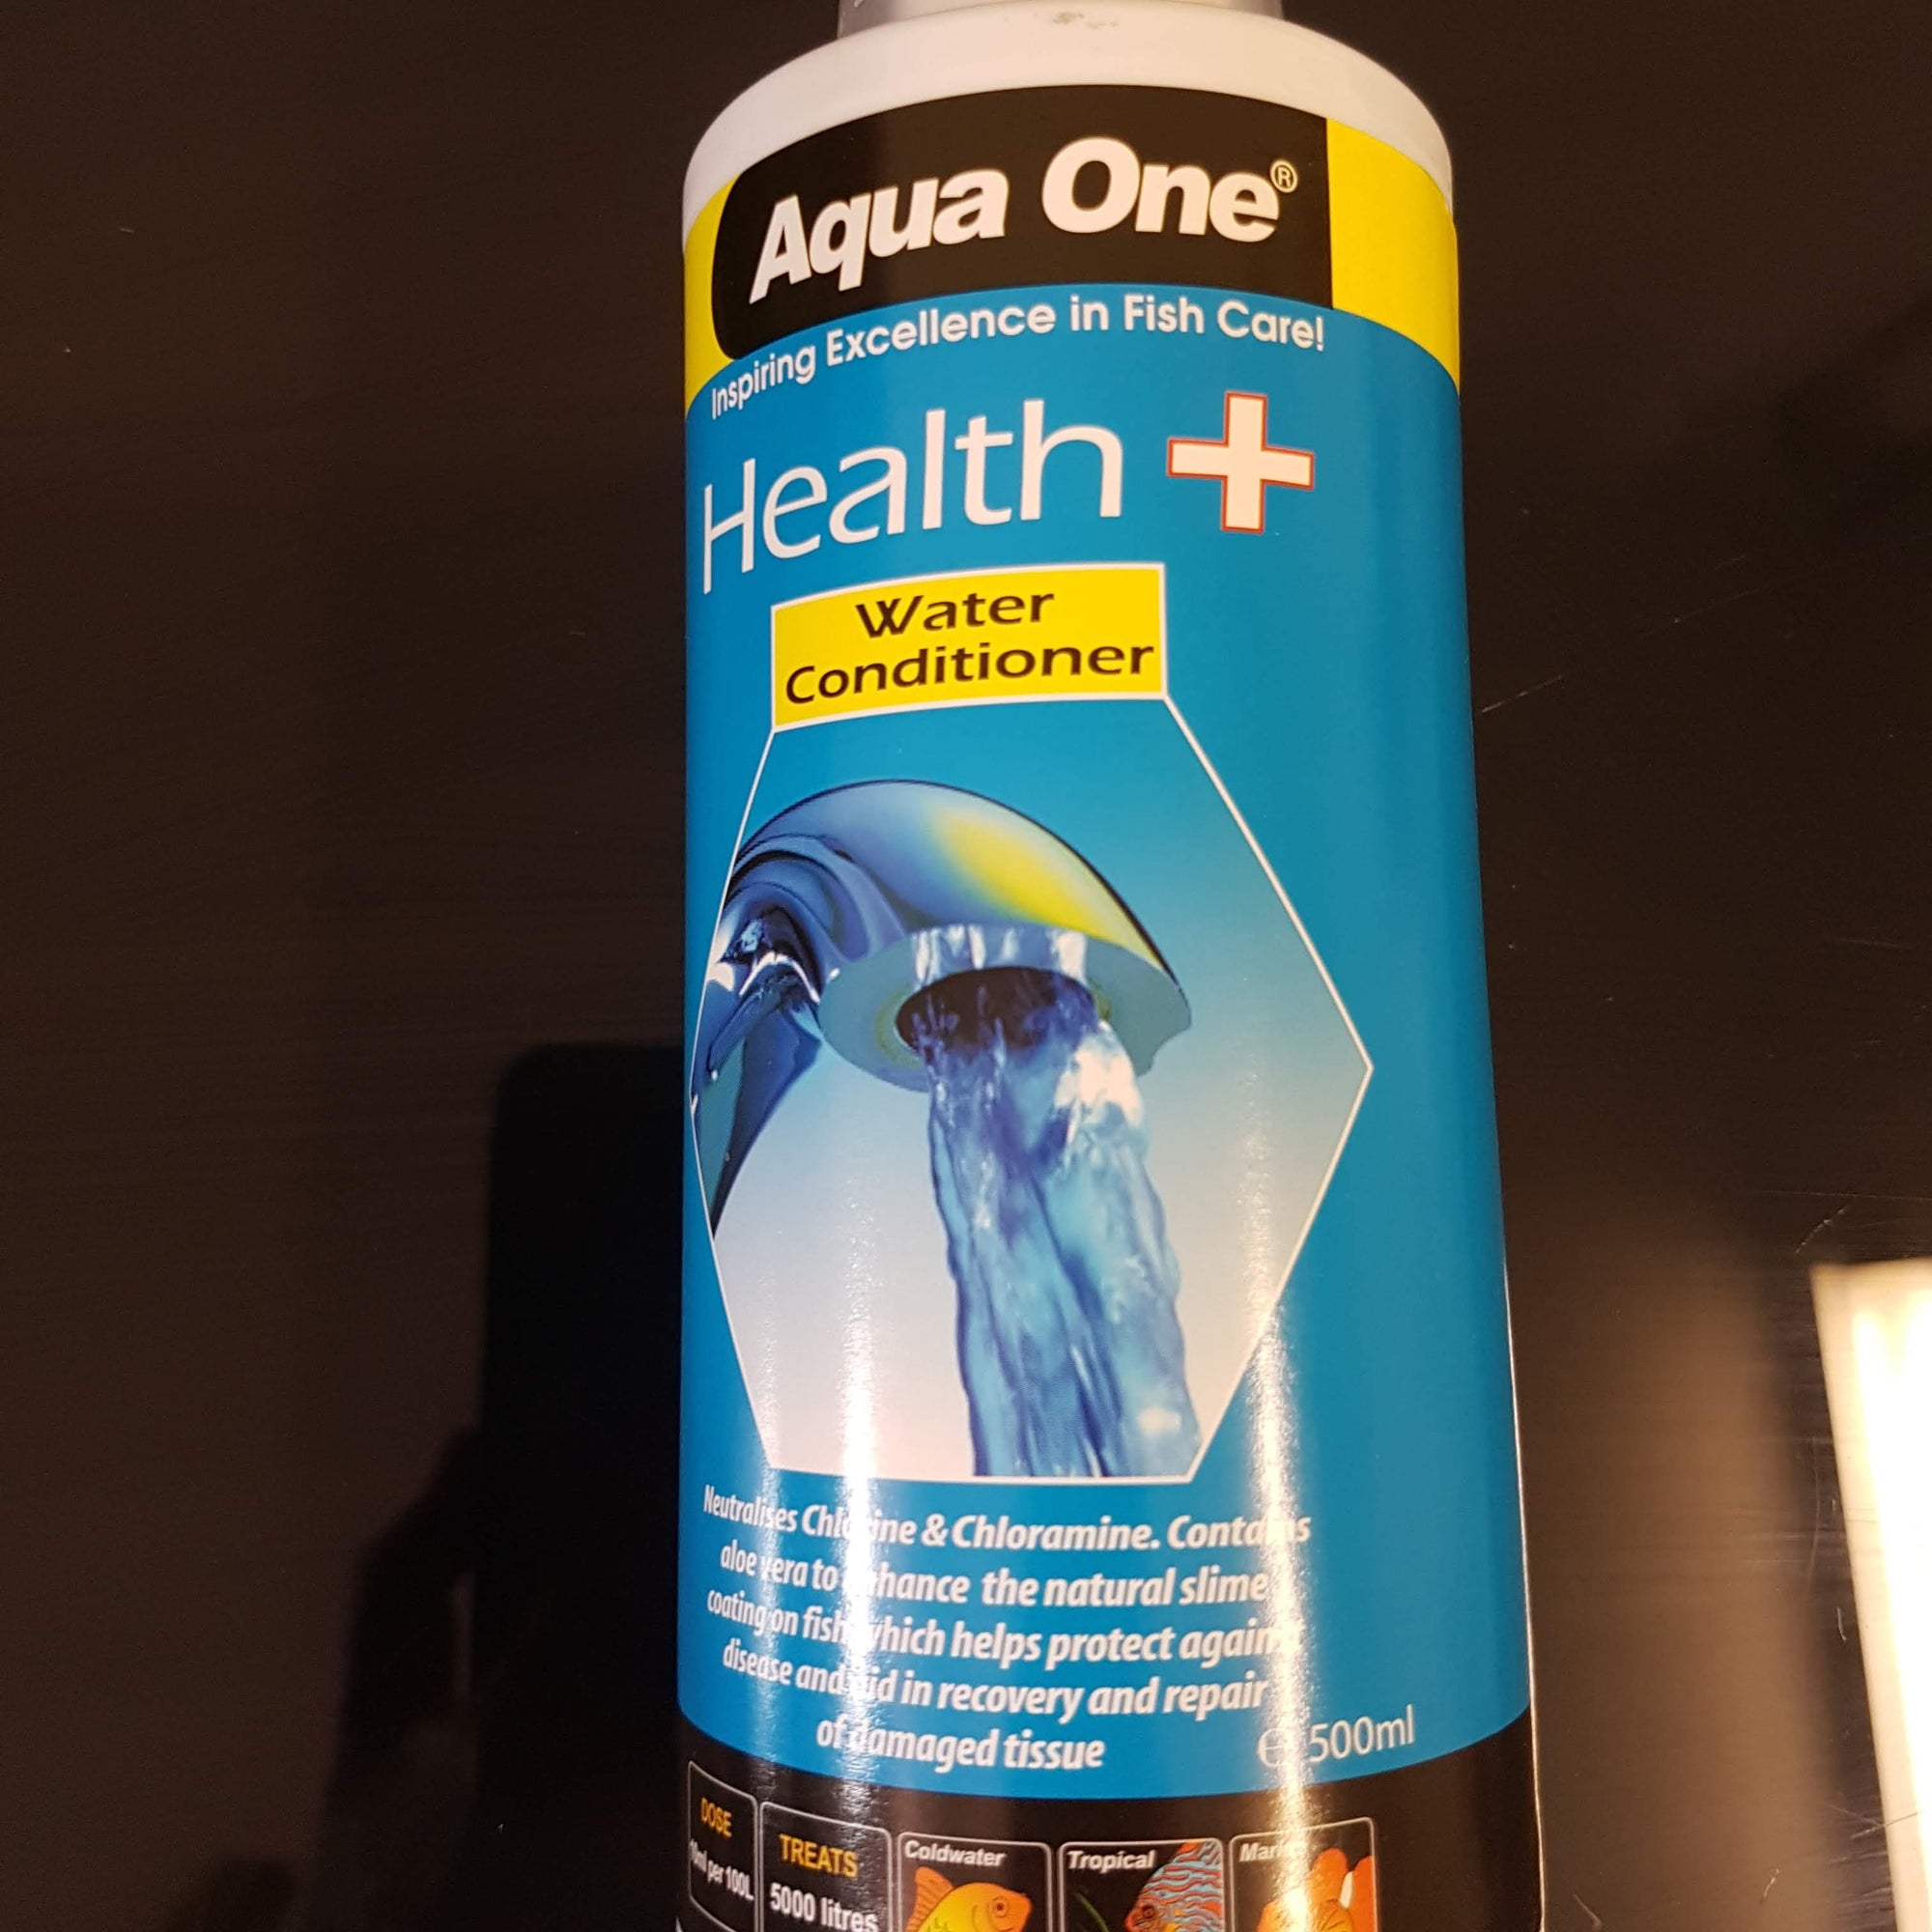 Health Plus Water Conditioner